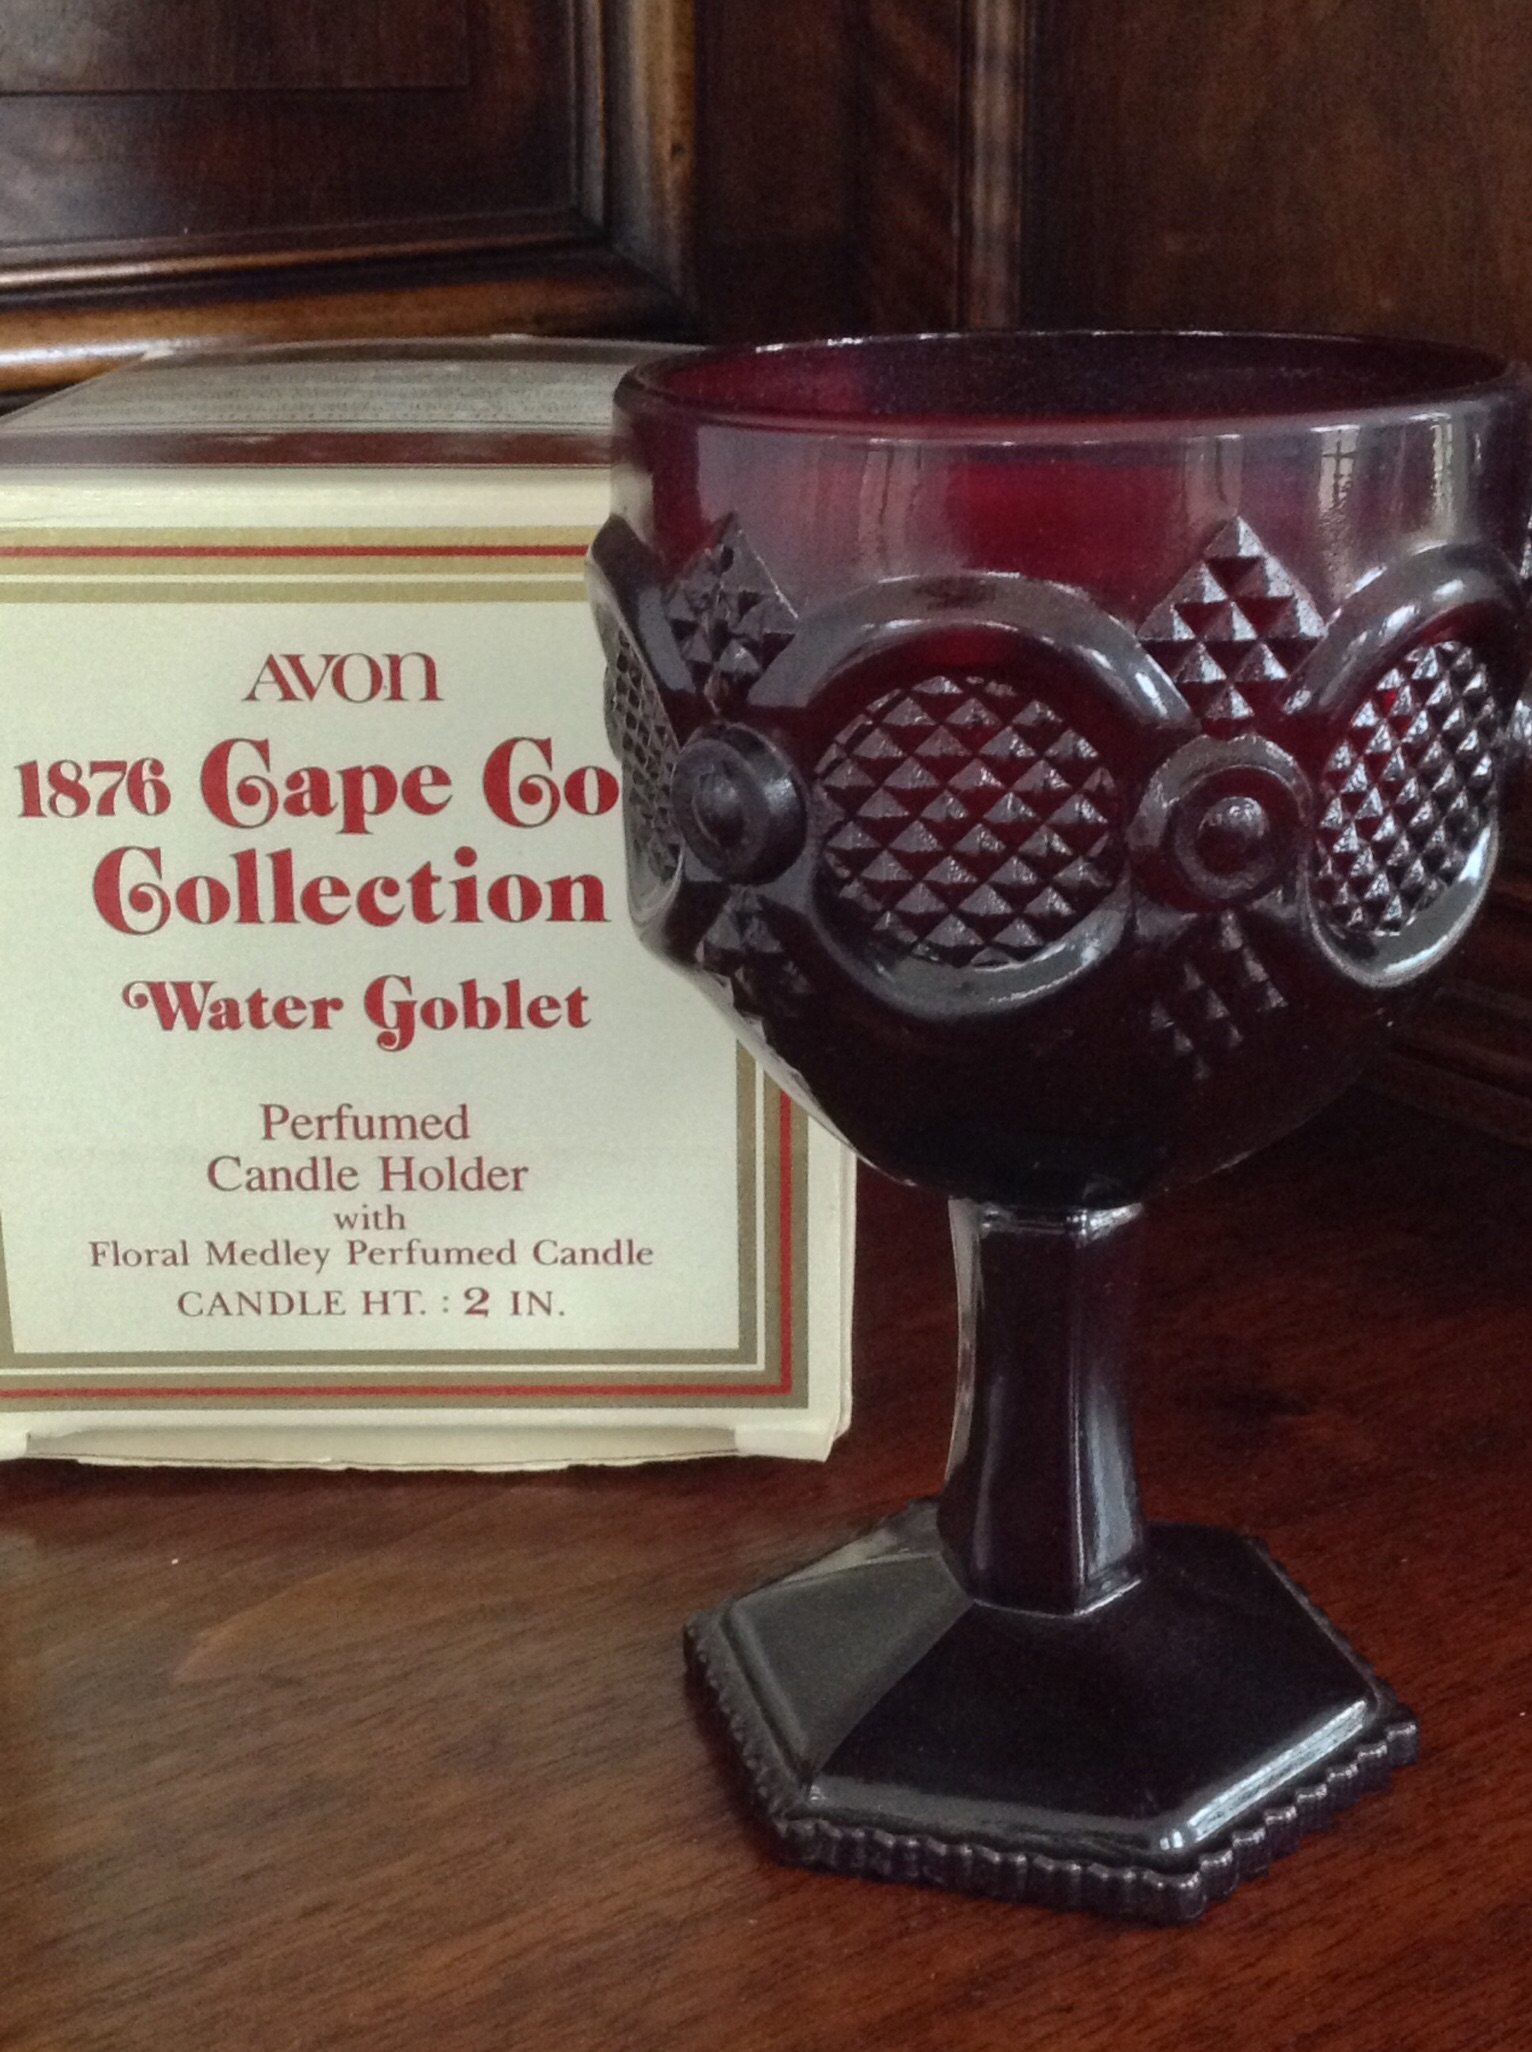 Avon 1876 Cape Cod Collection Water Goblet